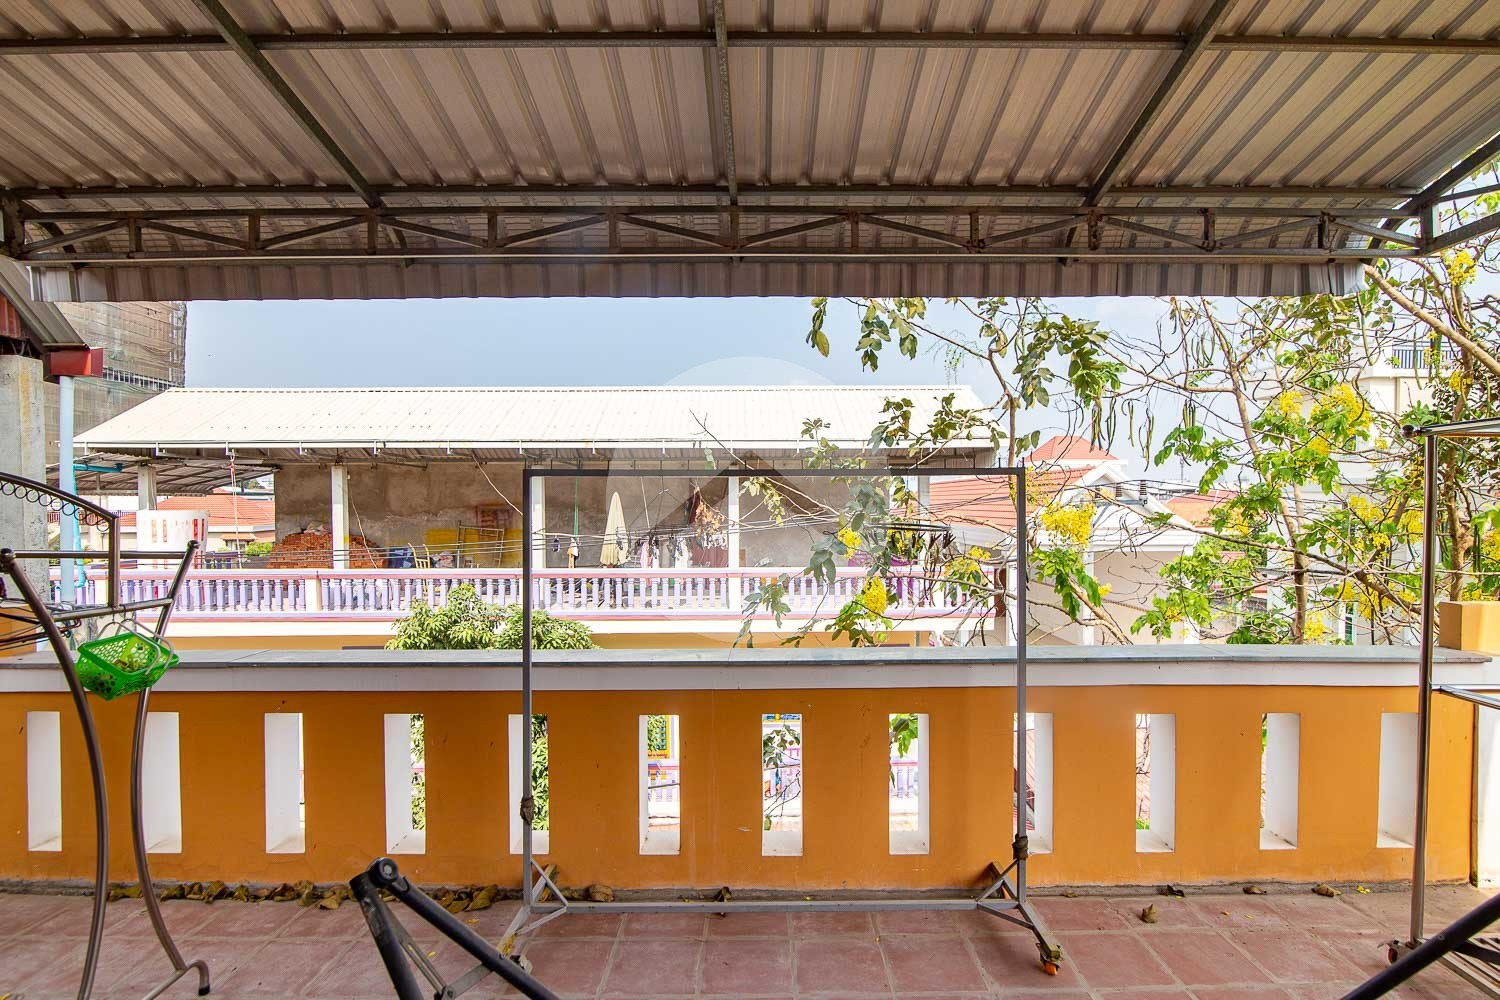 7 Bedroom Flat For Sale - Khan Meanchey, Phnom Penh